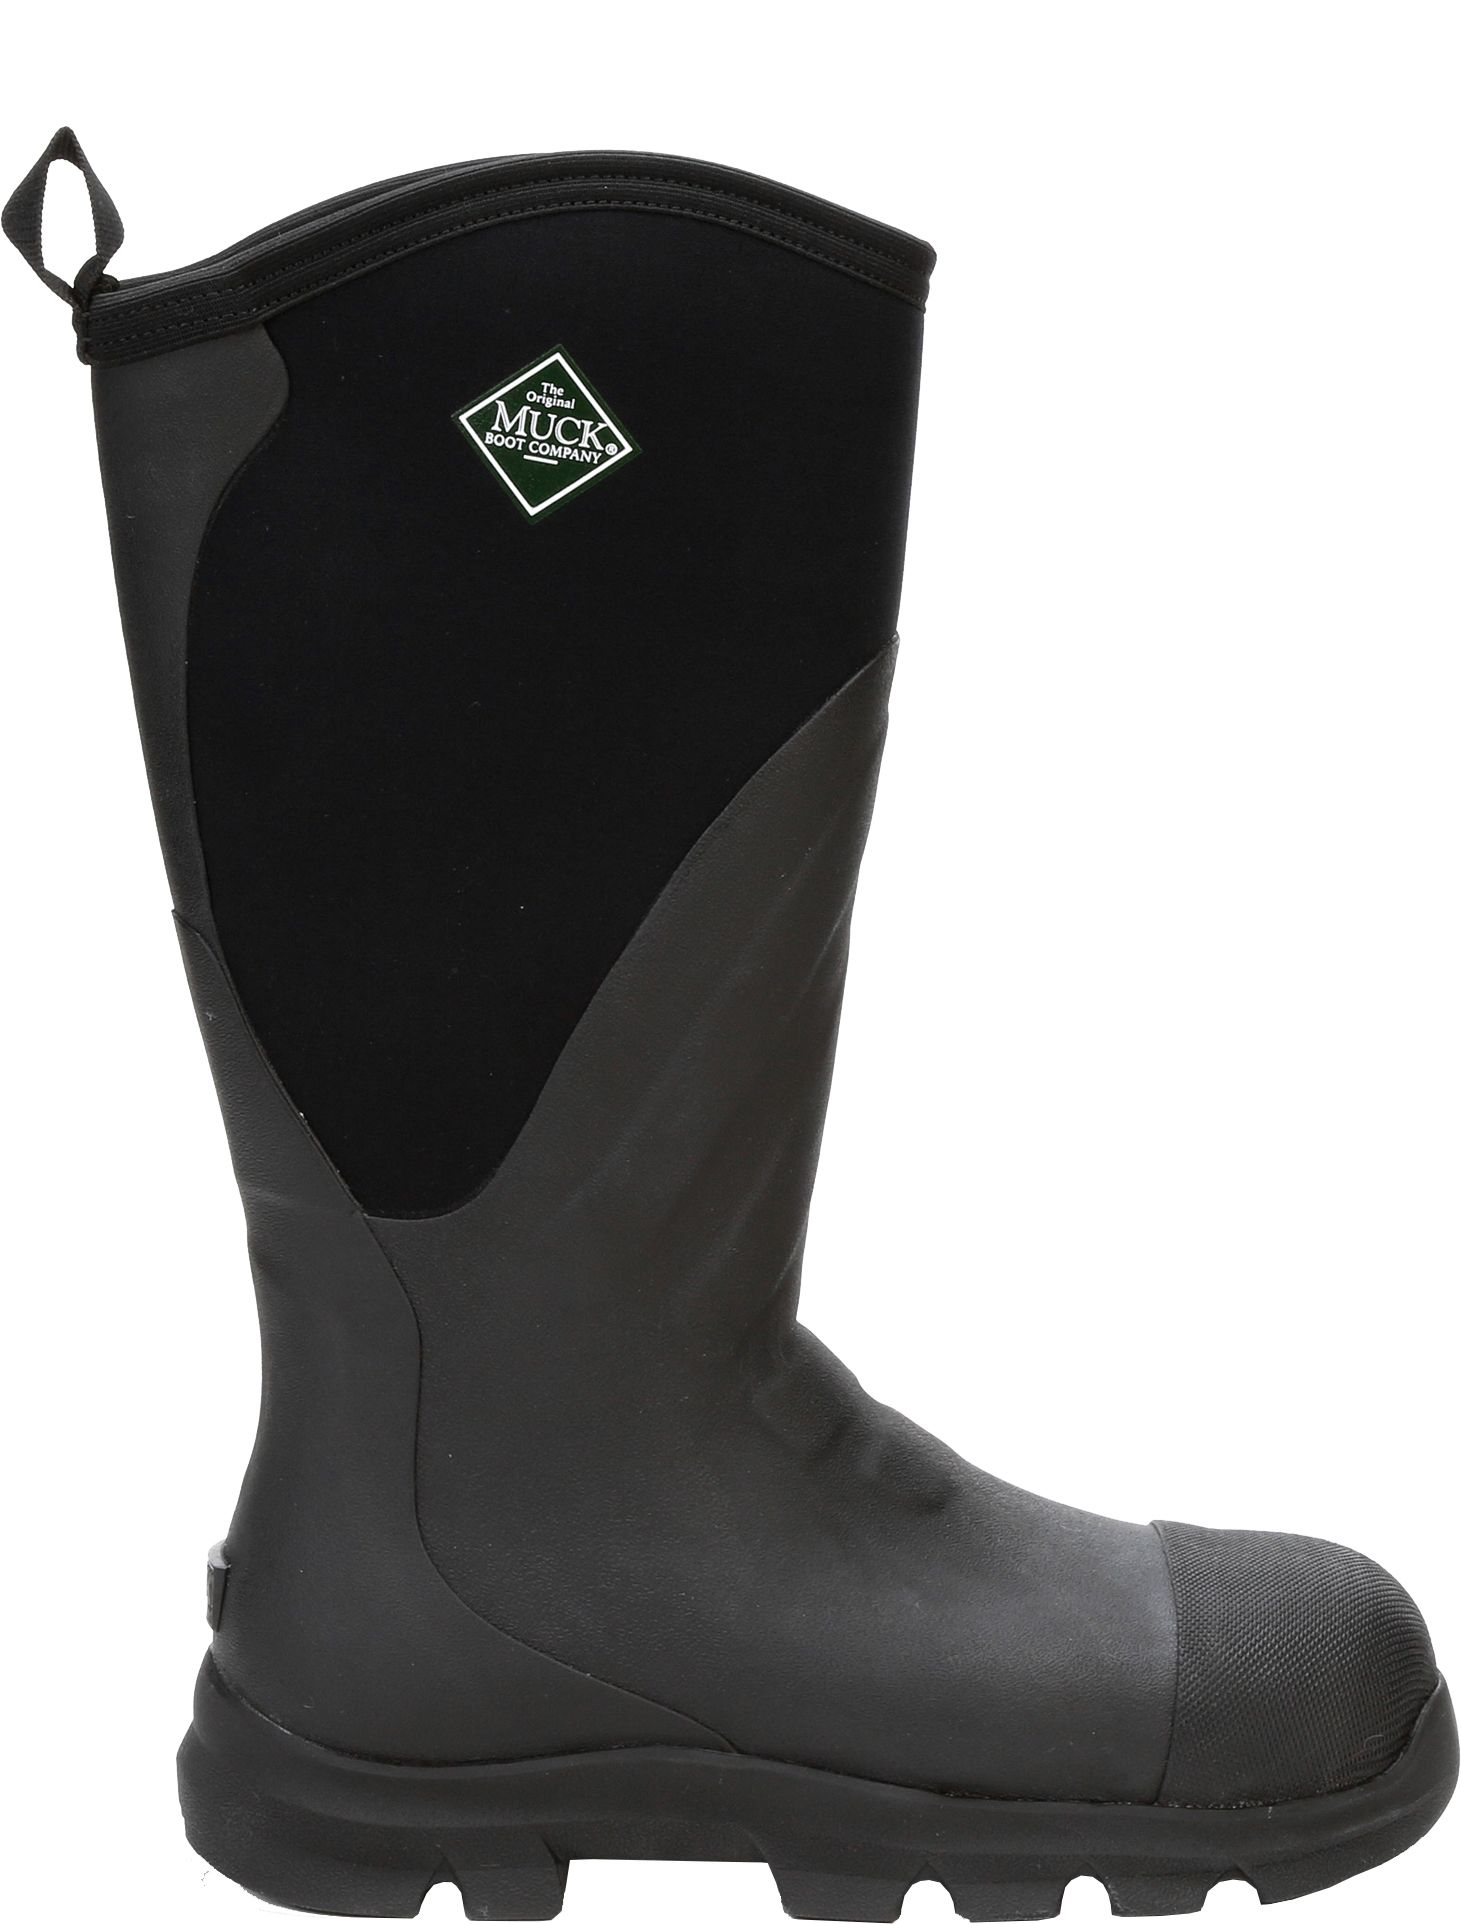 Muck Boot Men's Muck Grit Waterproof Safety Toe Work Boots| DICK'S ...